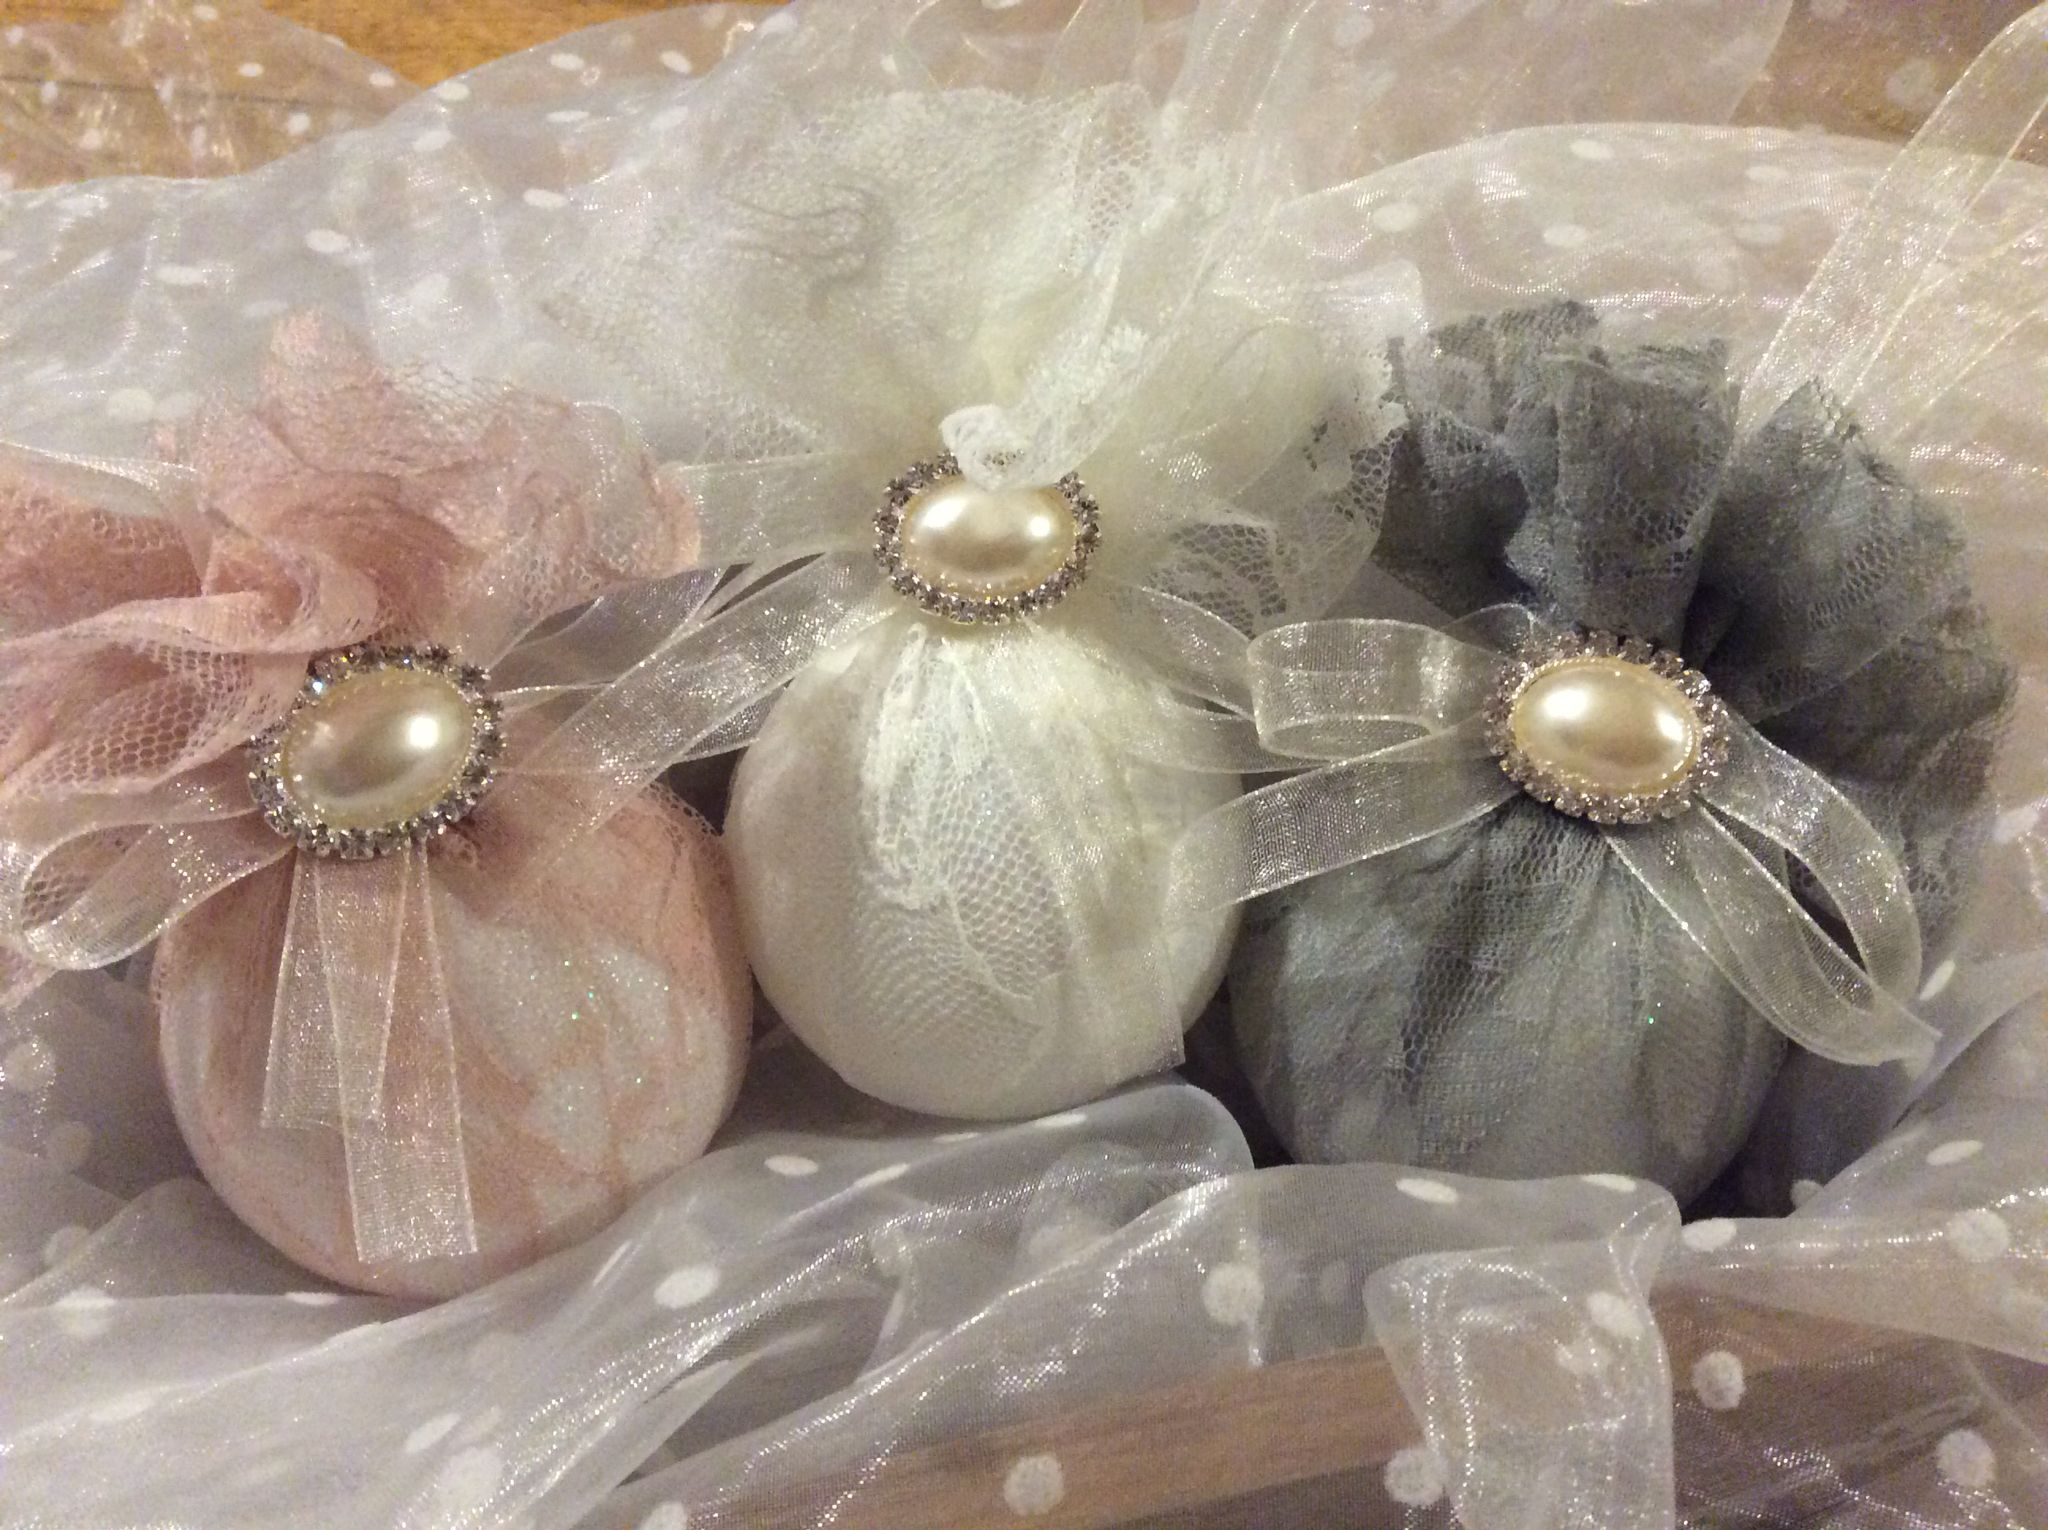 handmade shabby chic lace christmas baubles shabby chic xmas shabby chic ornaments shabby chic - Handmade Shabby Chic Christmas Decorations